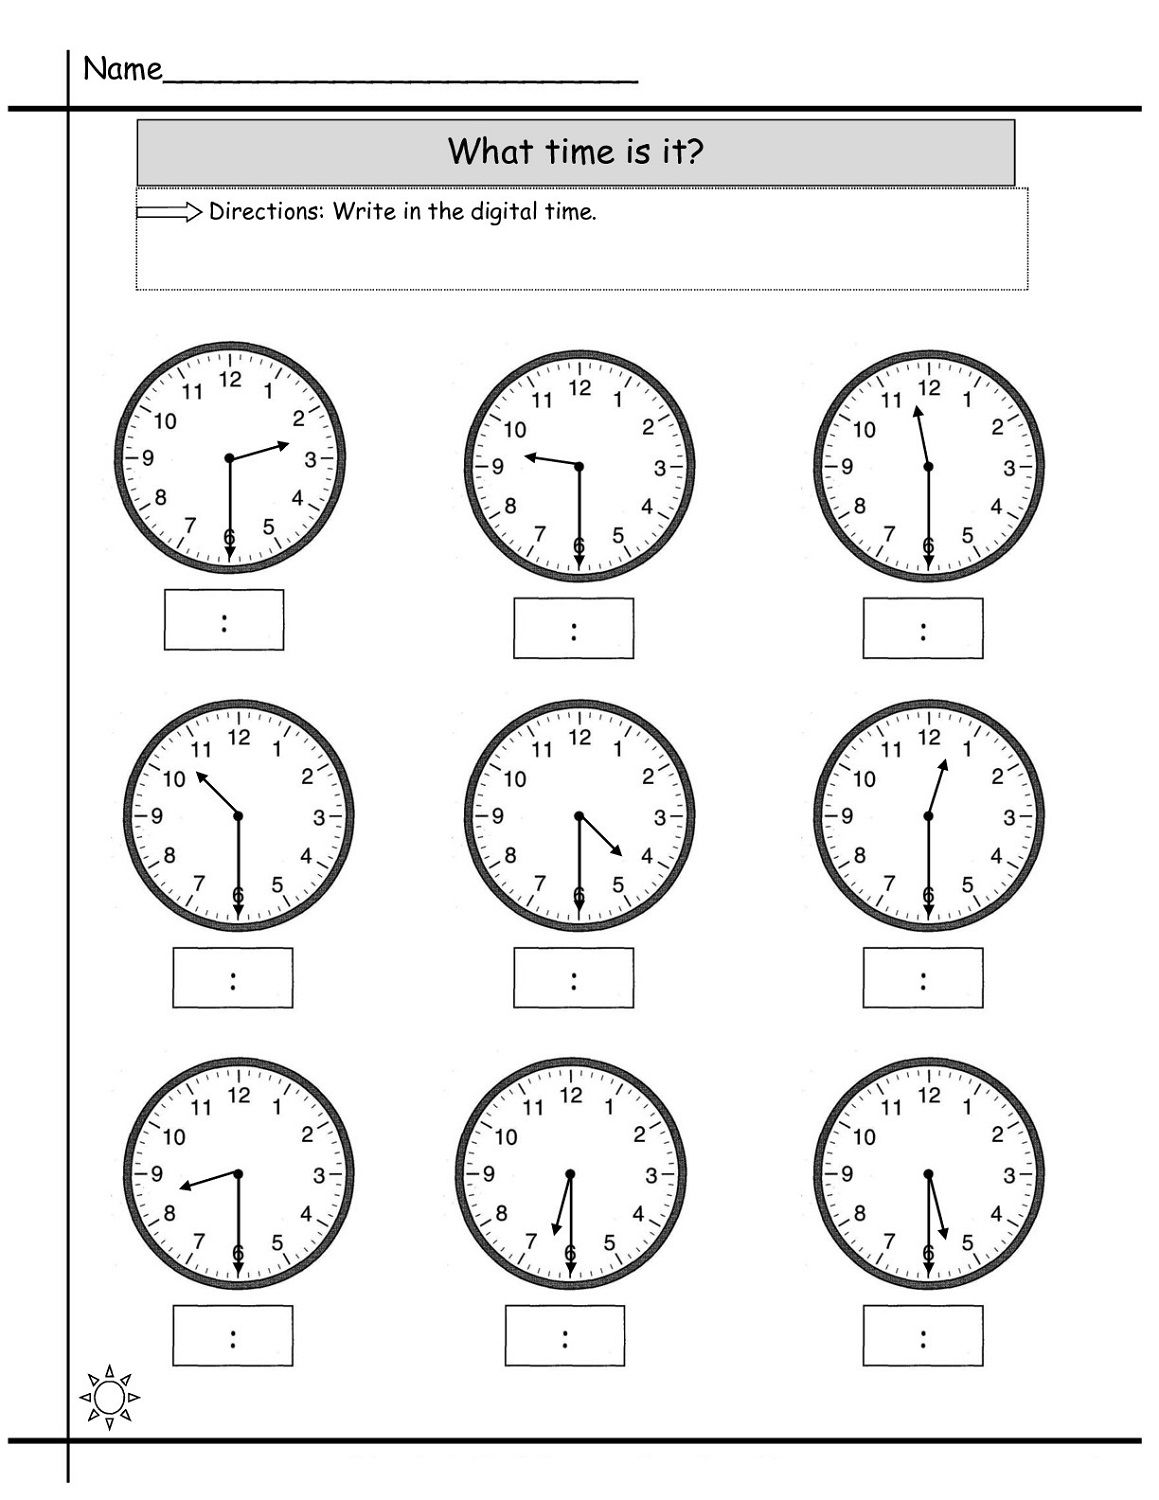 worksheet Blank Clocks Worksheet blank clock worksheet to print activity shelter kids shelter